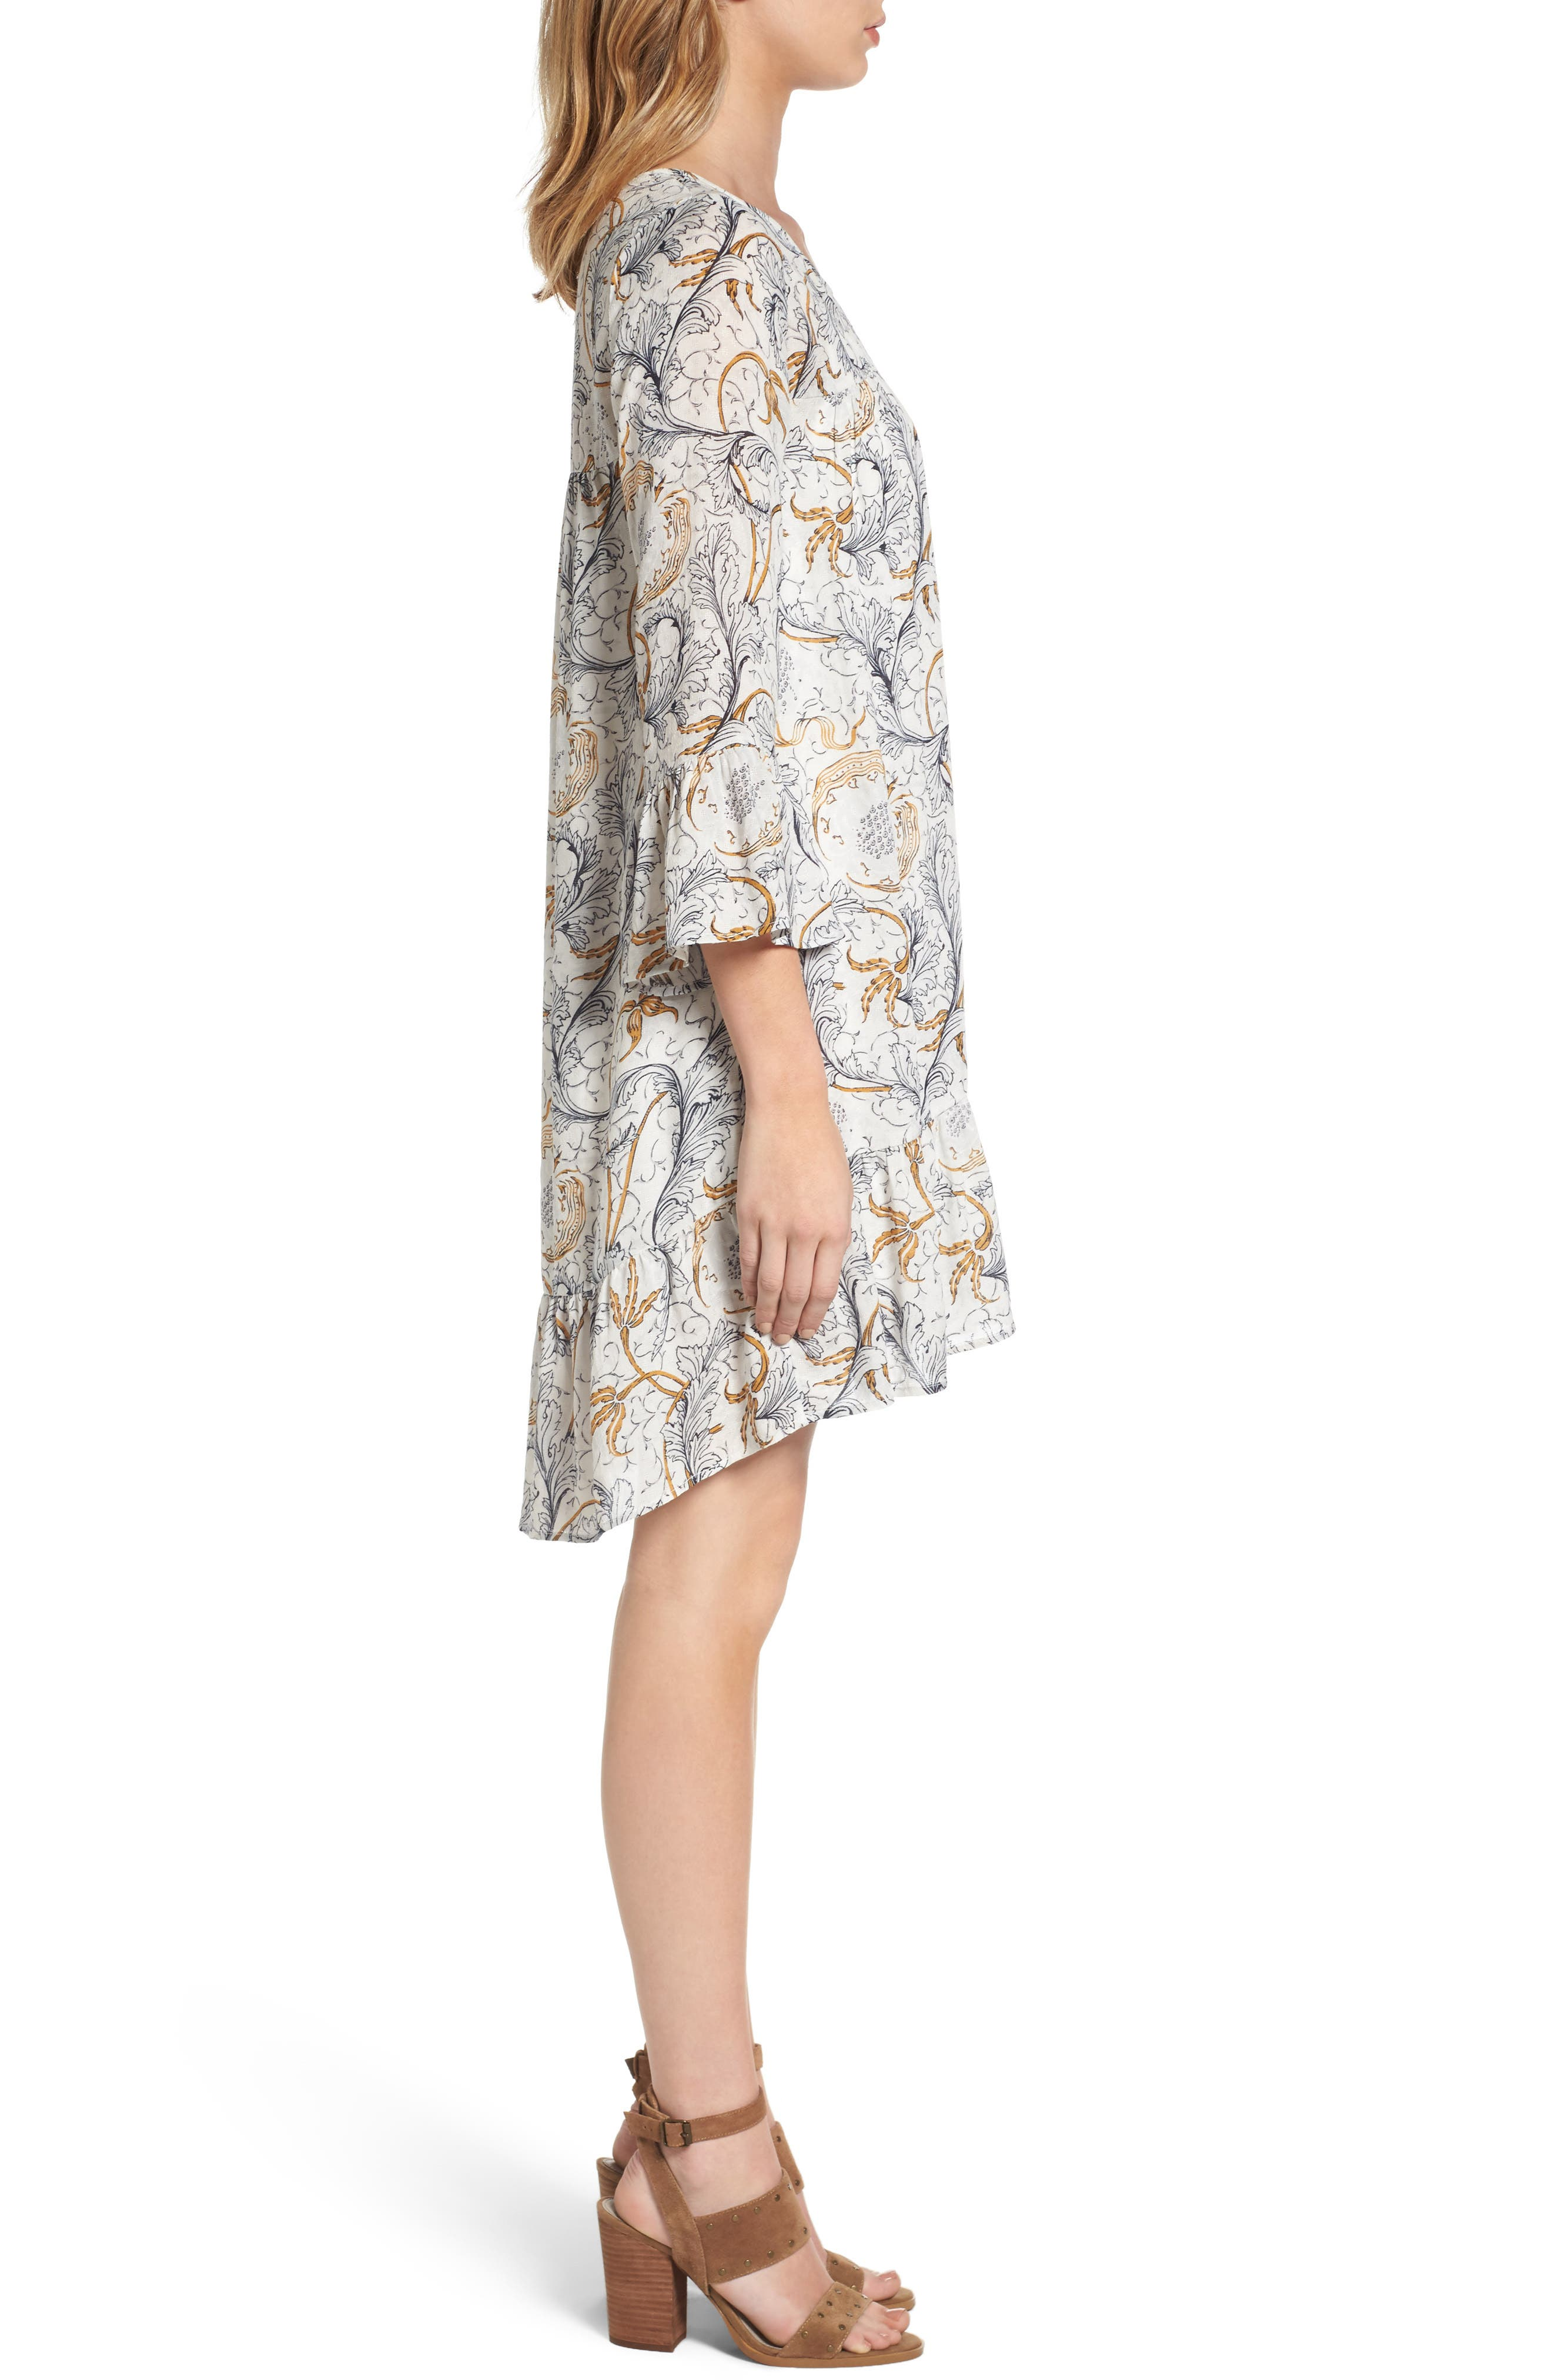 Ruffle Print Dress,                             Alternate thumbnail 3, color,                             Grey Fog Feathered Floral